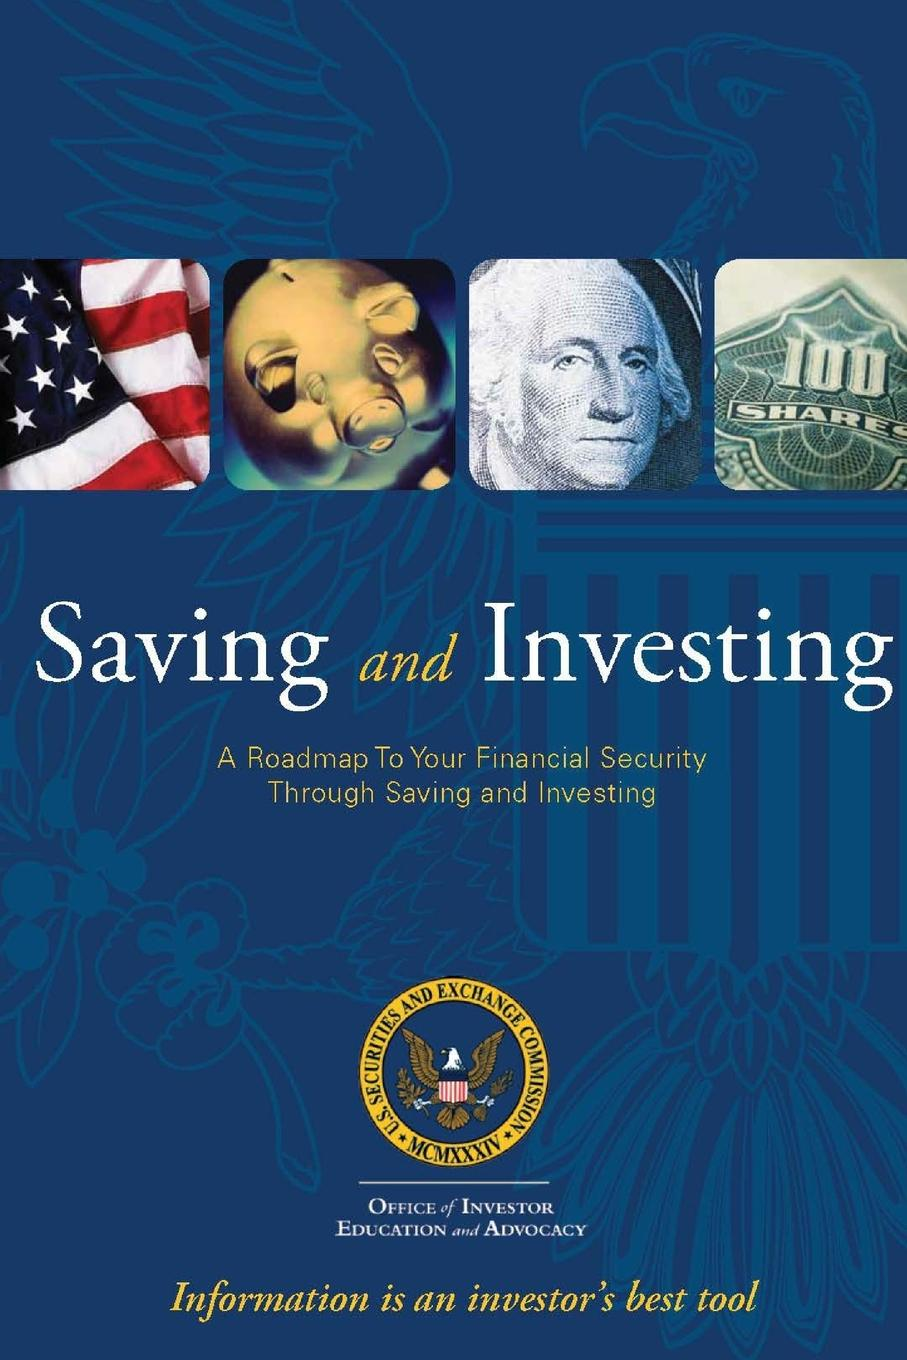 U.S. Securities and Exchange Commission Saving and Investing. A Roadmap To Your Financial Security Through Saving and Investing недорго, оригинальная цена